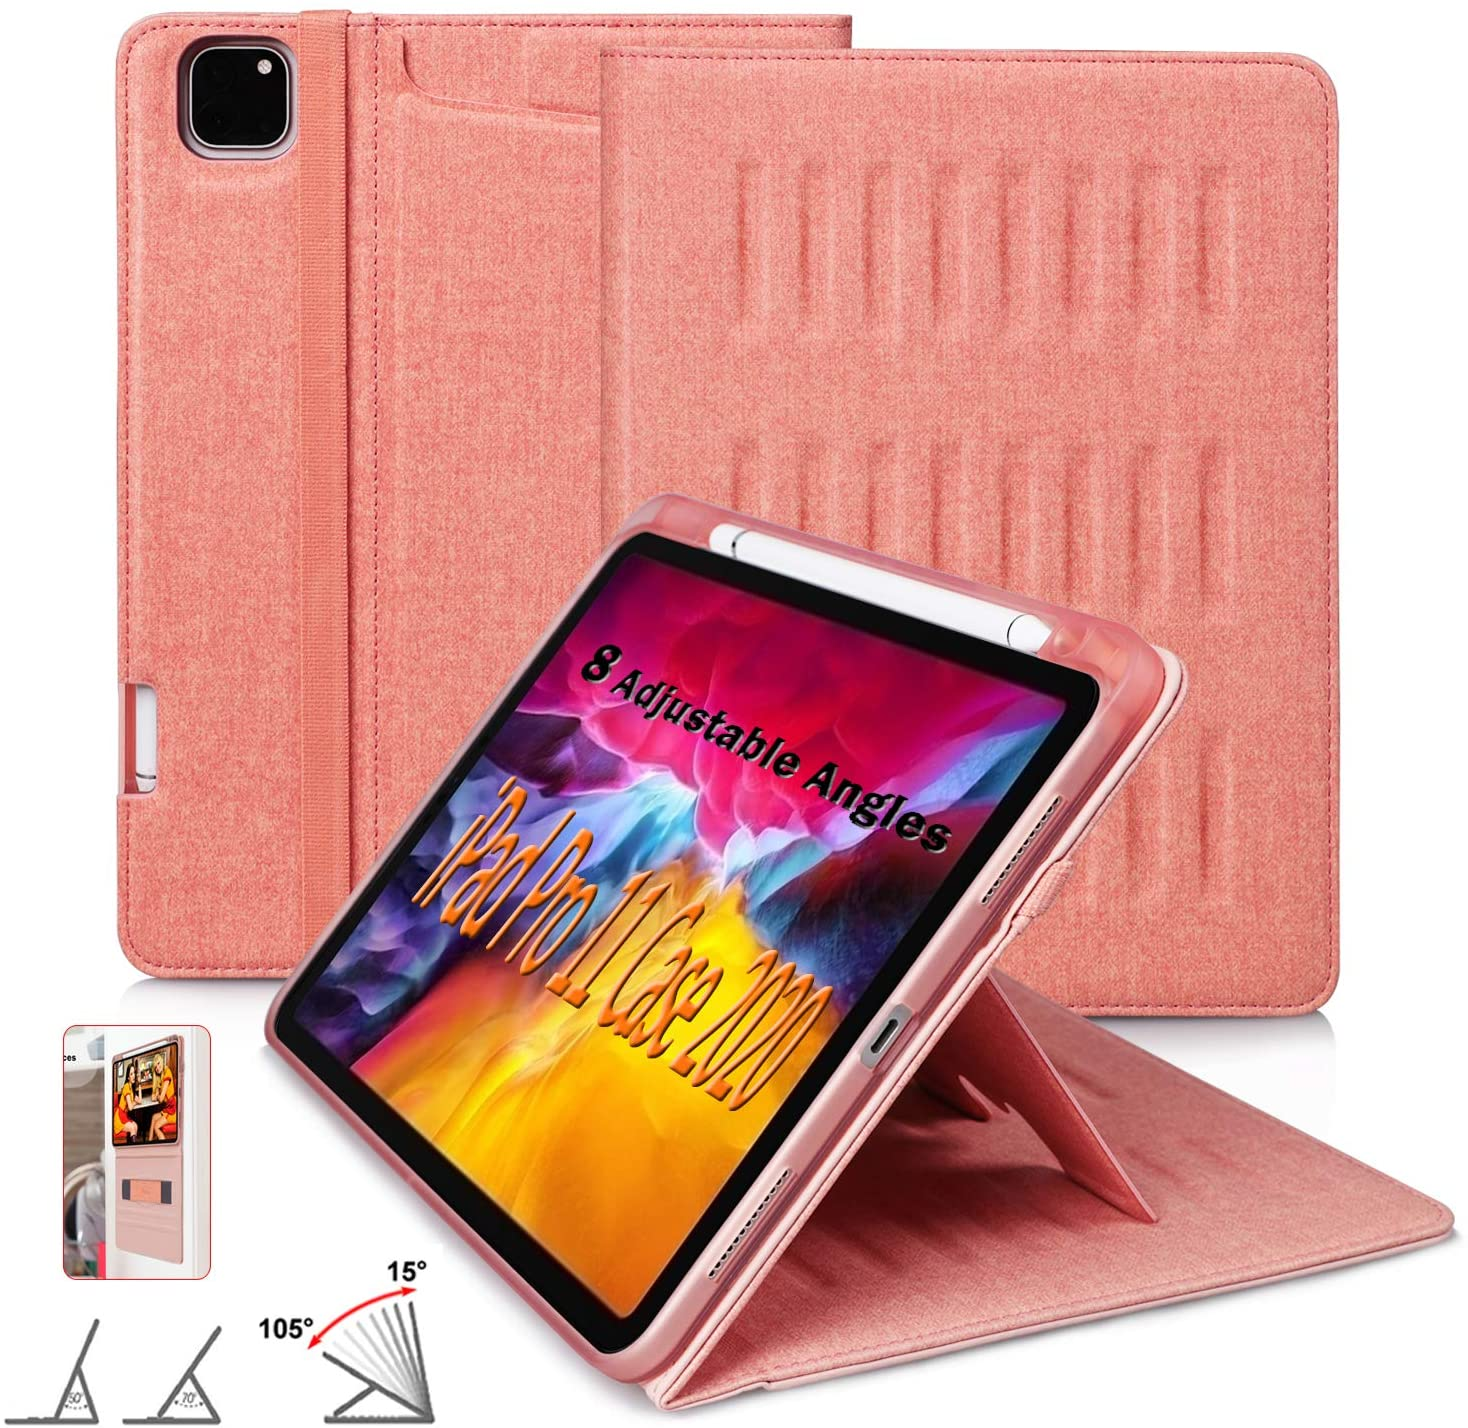 New Model The Alpha Case for 2020 iPad Pro 11 inch - Ultra Slim Protective Case - Wireless Apple Pencil Charging - Convenient Magnetic Stand & Sleep/Wake Cover